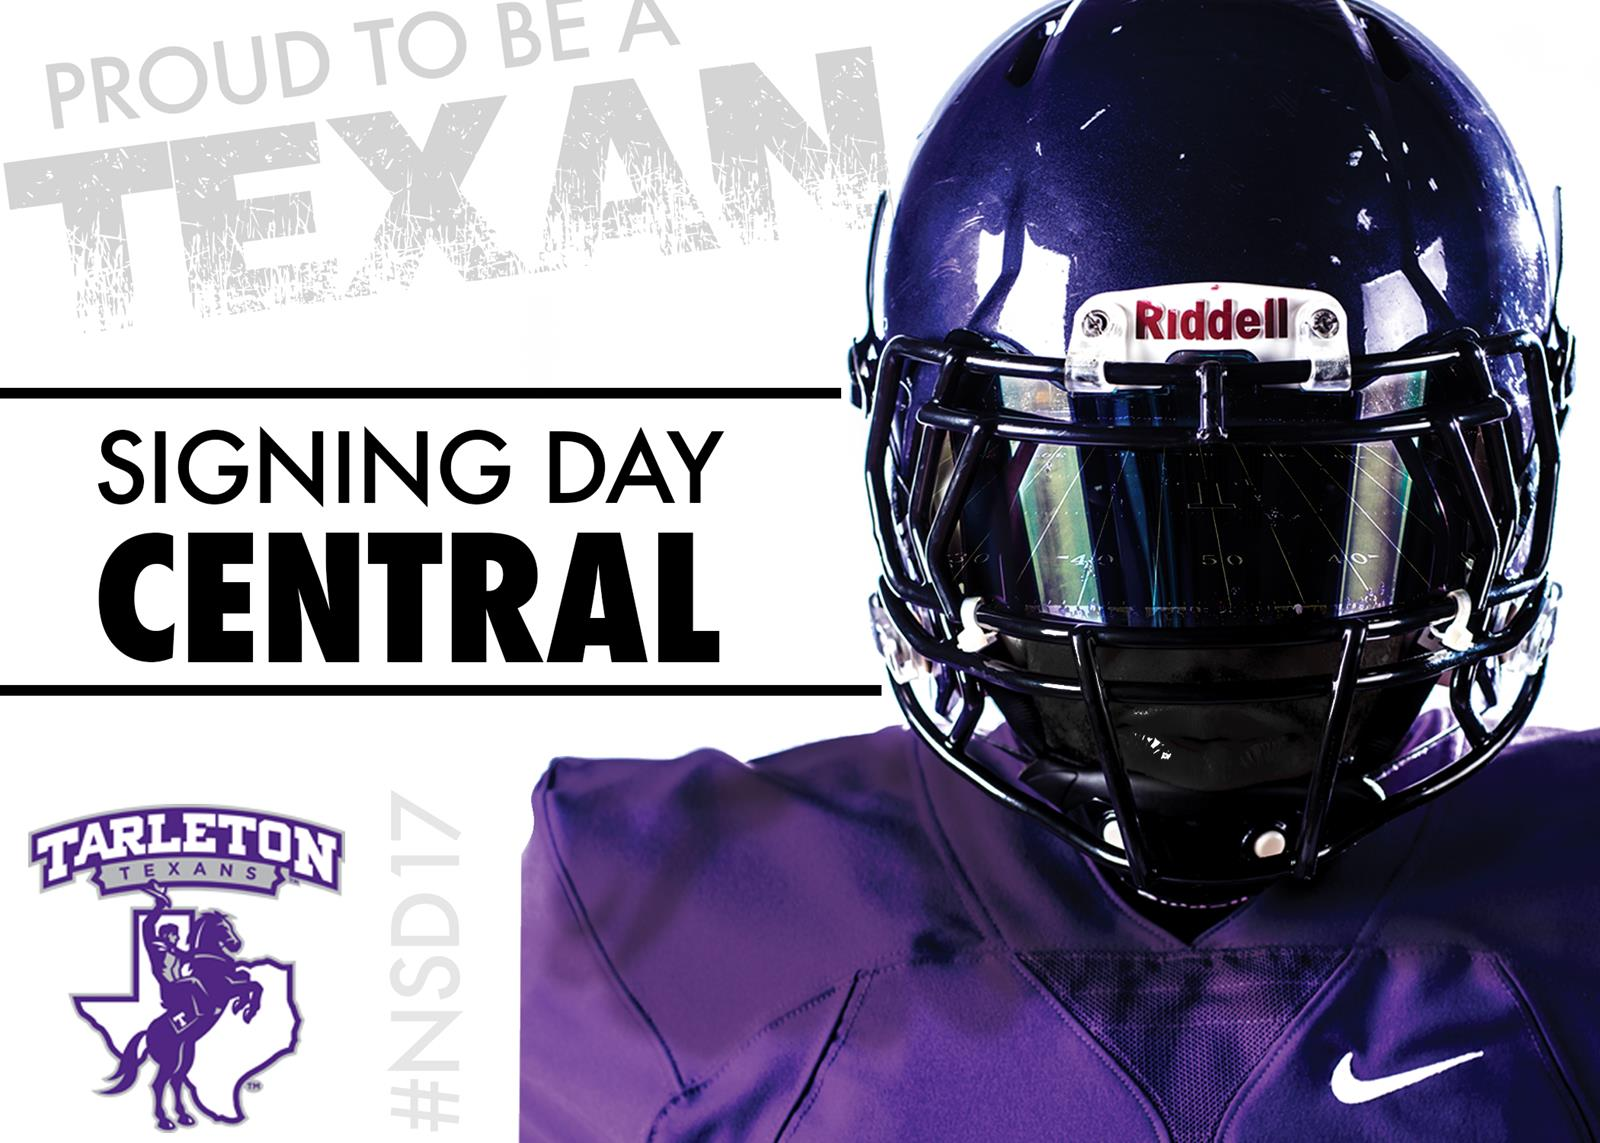 Signing Day Central: 2017 Tarleton Football